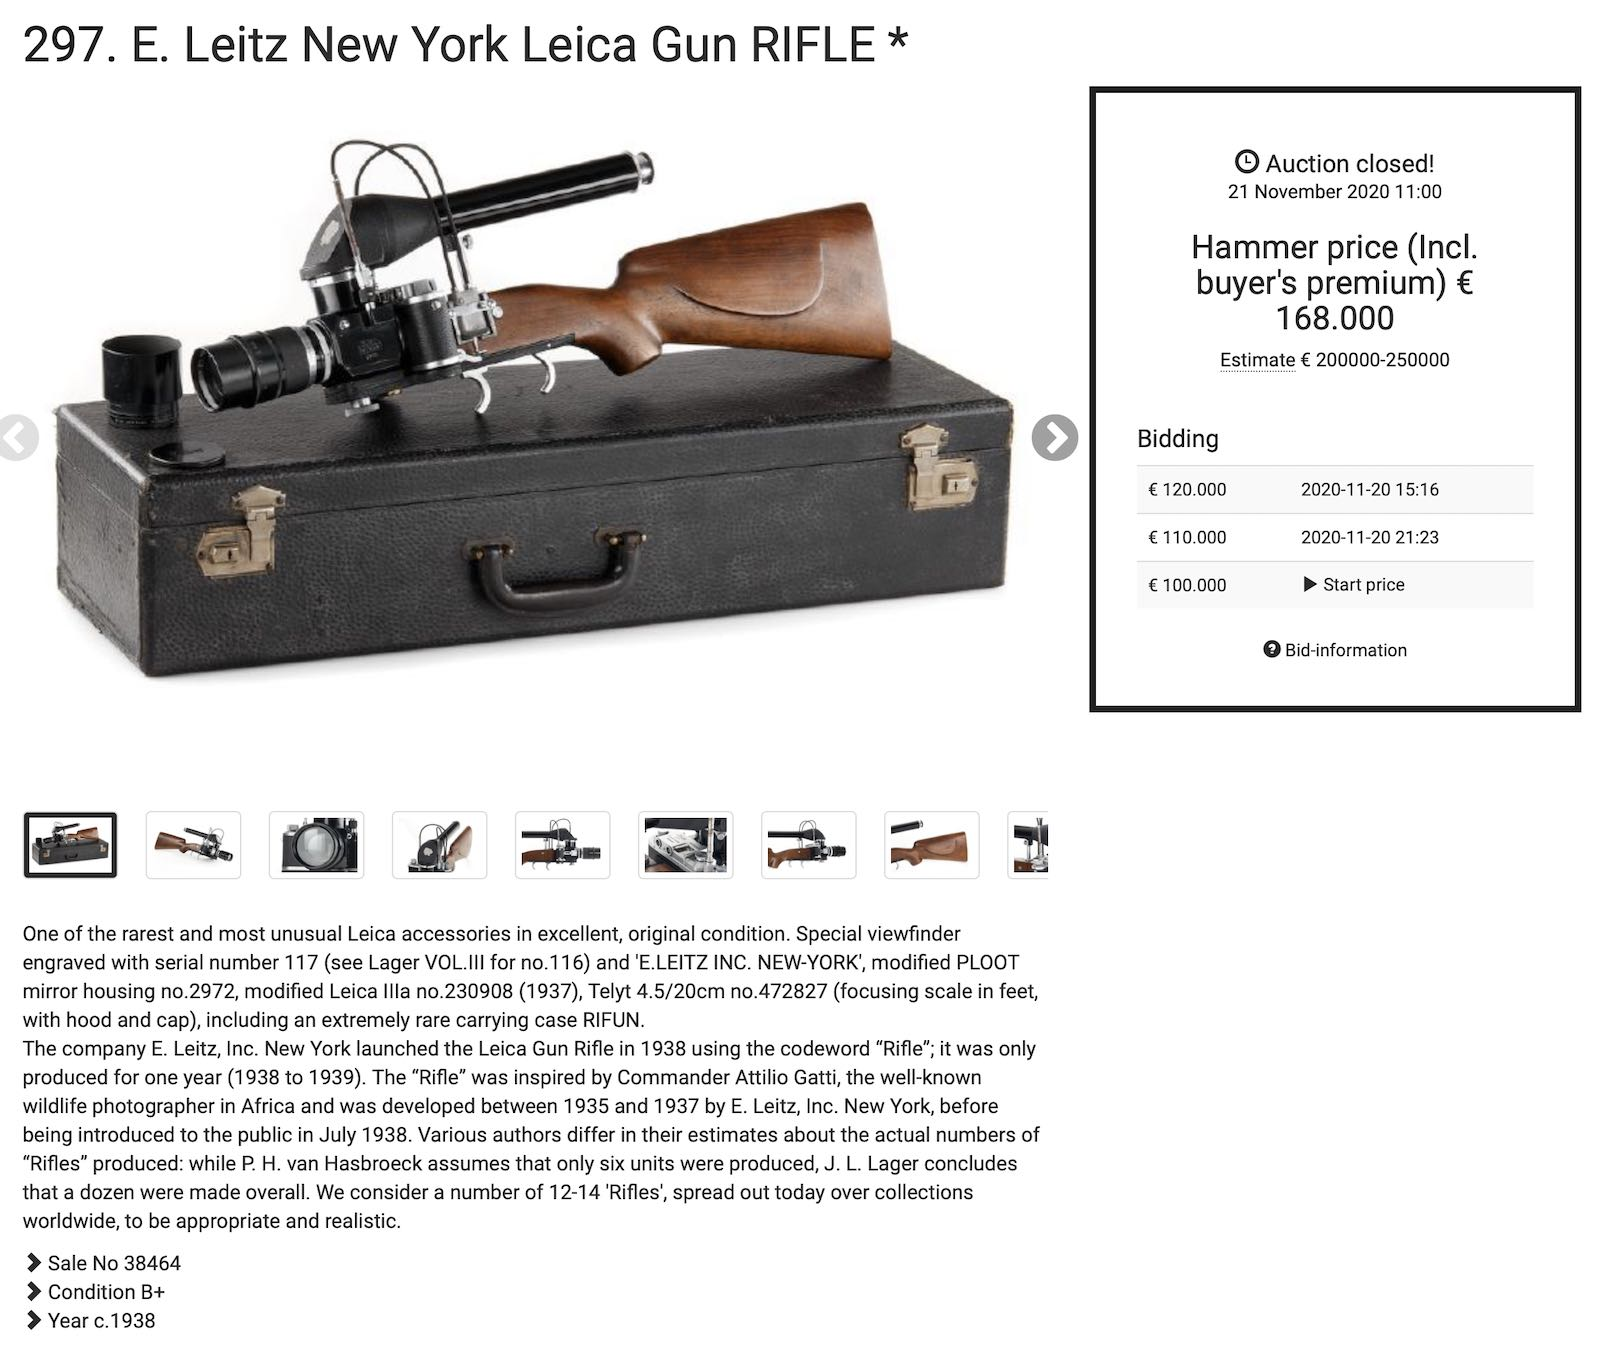 The results form the 37th Leitz Photographica Auction are out - Leica Rumors